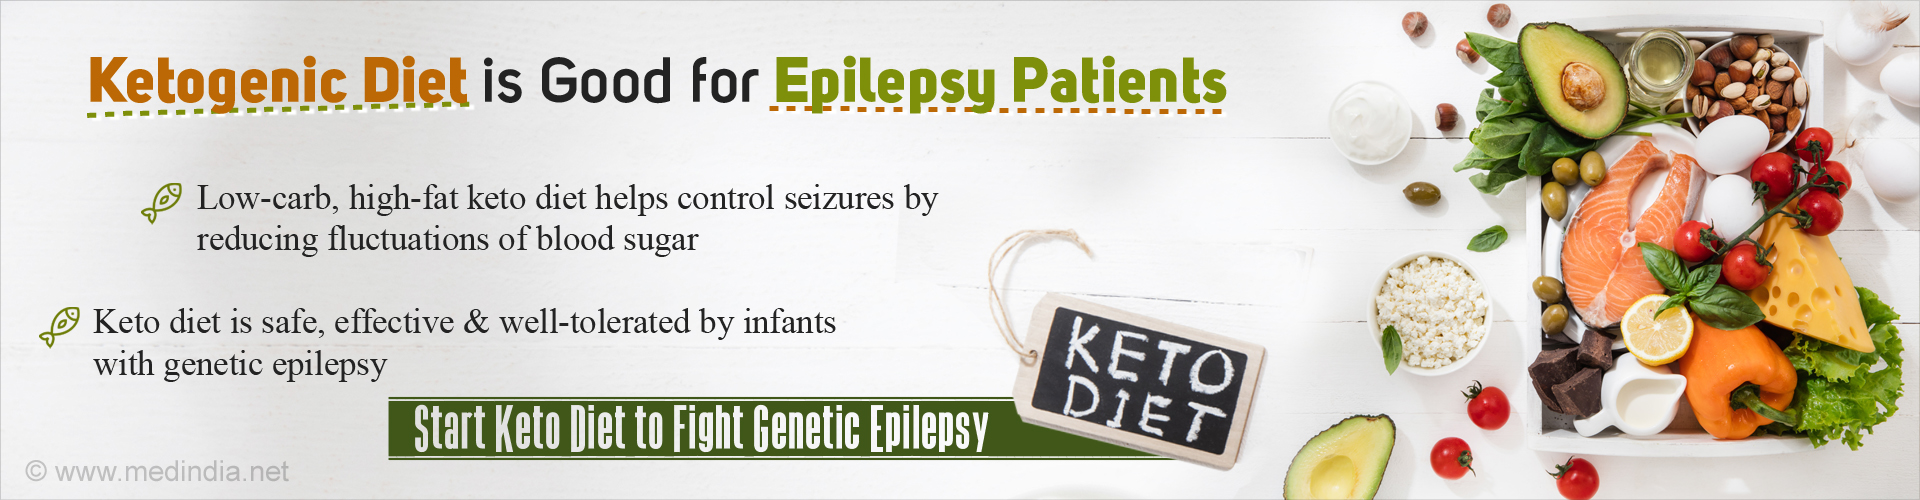 Ketogenic diet is good for epilepsy patients. Low-carb, high-fat keto diet helps control seizures by reducing fluctuations of blood sugar. Keto diet is safe, effective & well-tolerated by infants with genetic epilepsy. Start keto diet to fight genetic epilepsy.